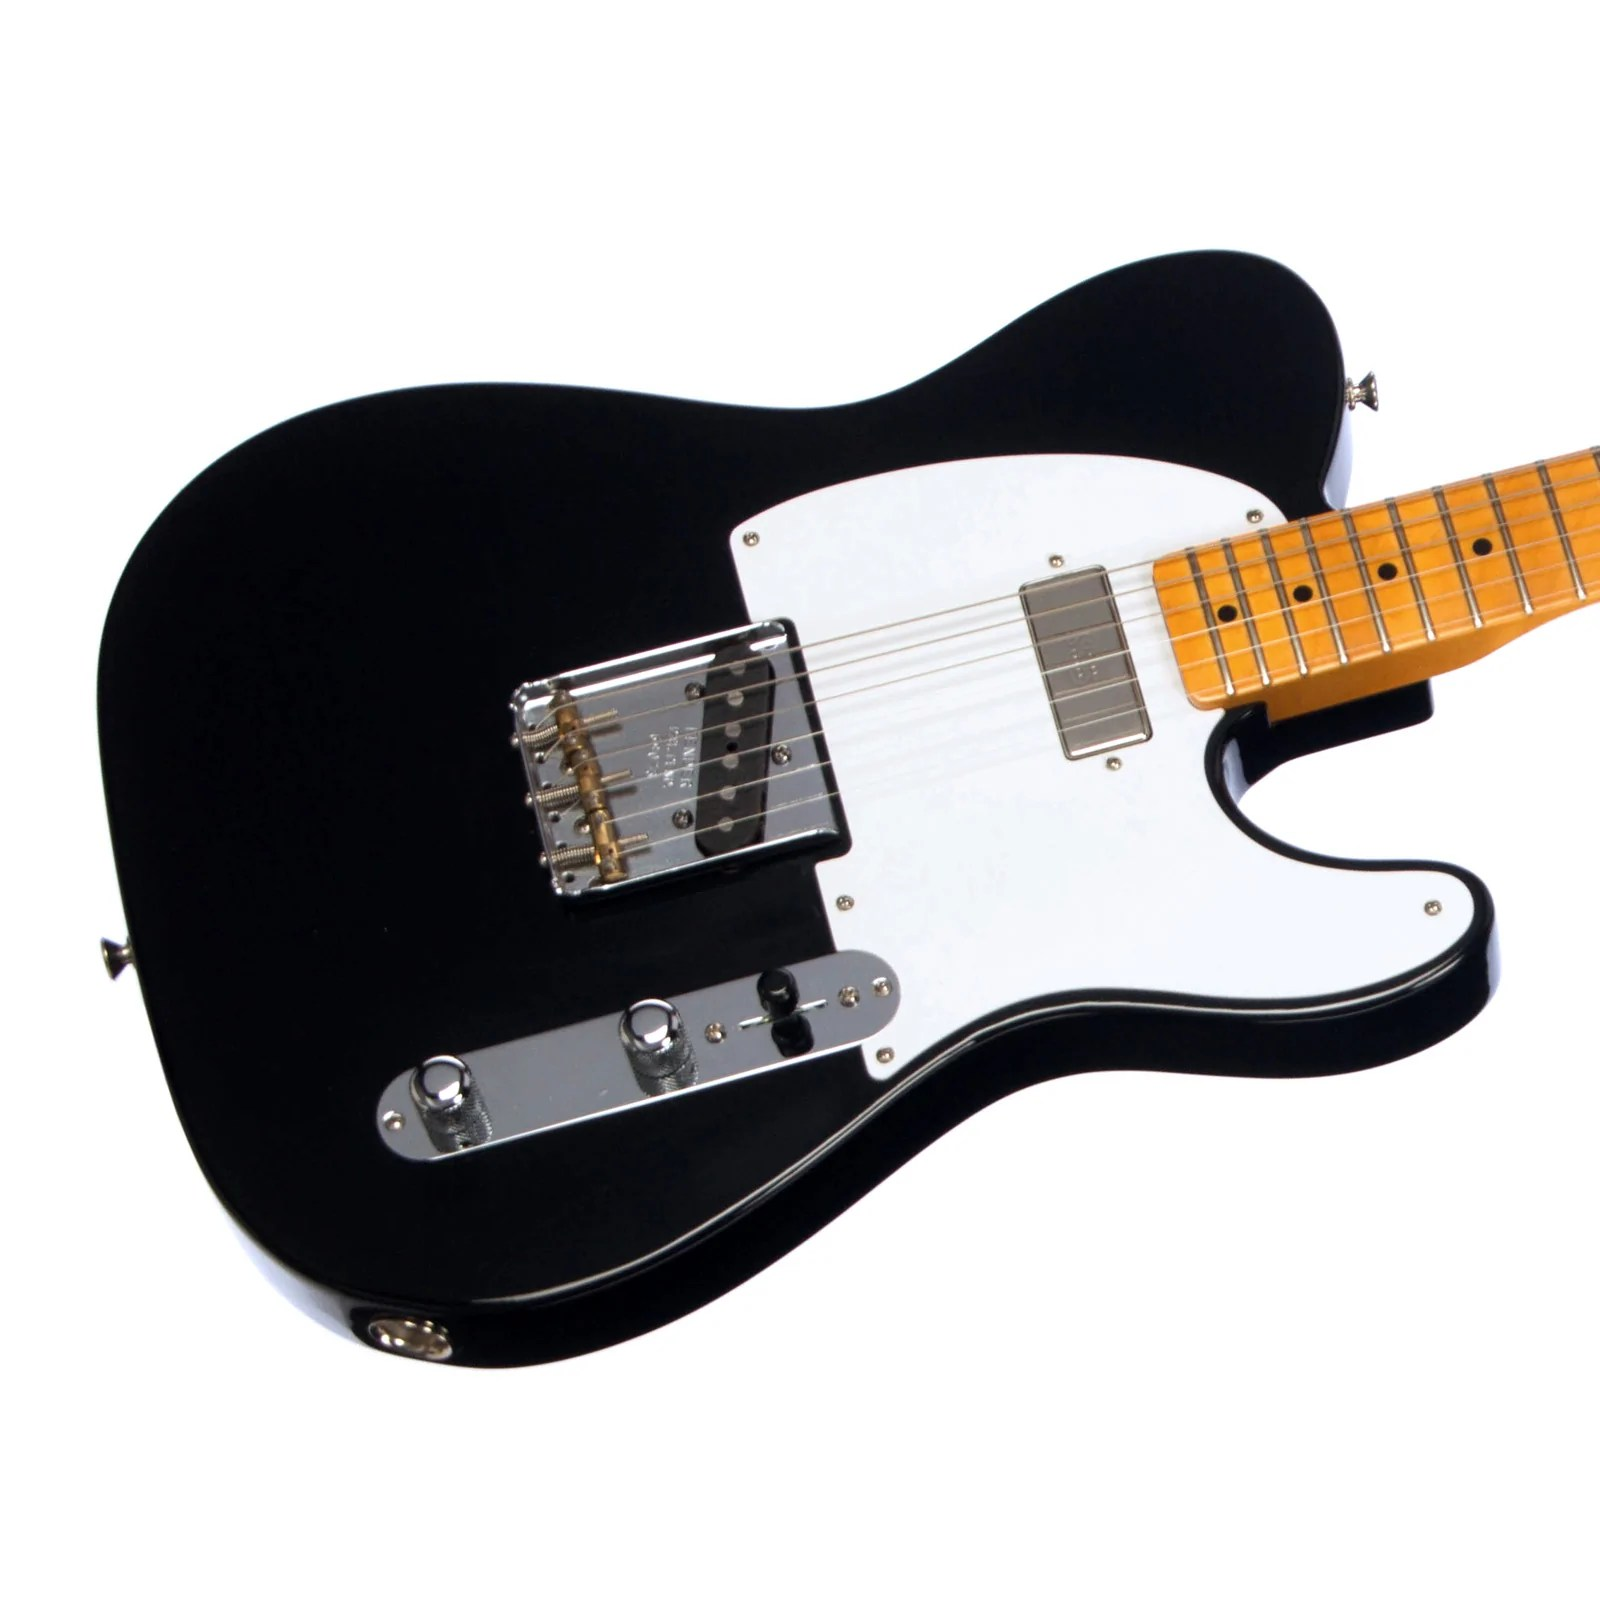 medium resolution of used fender vintage hot rod 52 telecaster black electric guitar american vintage ri 3952 telecaster loaded control plate jack wiring